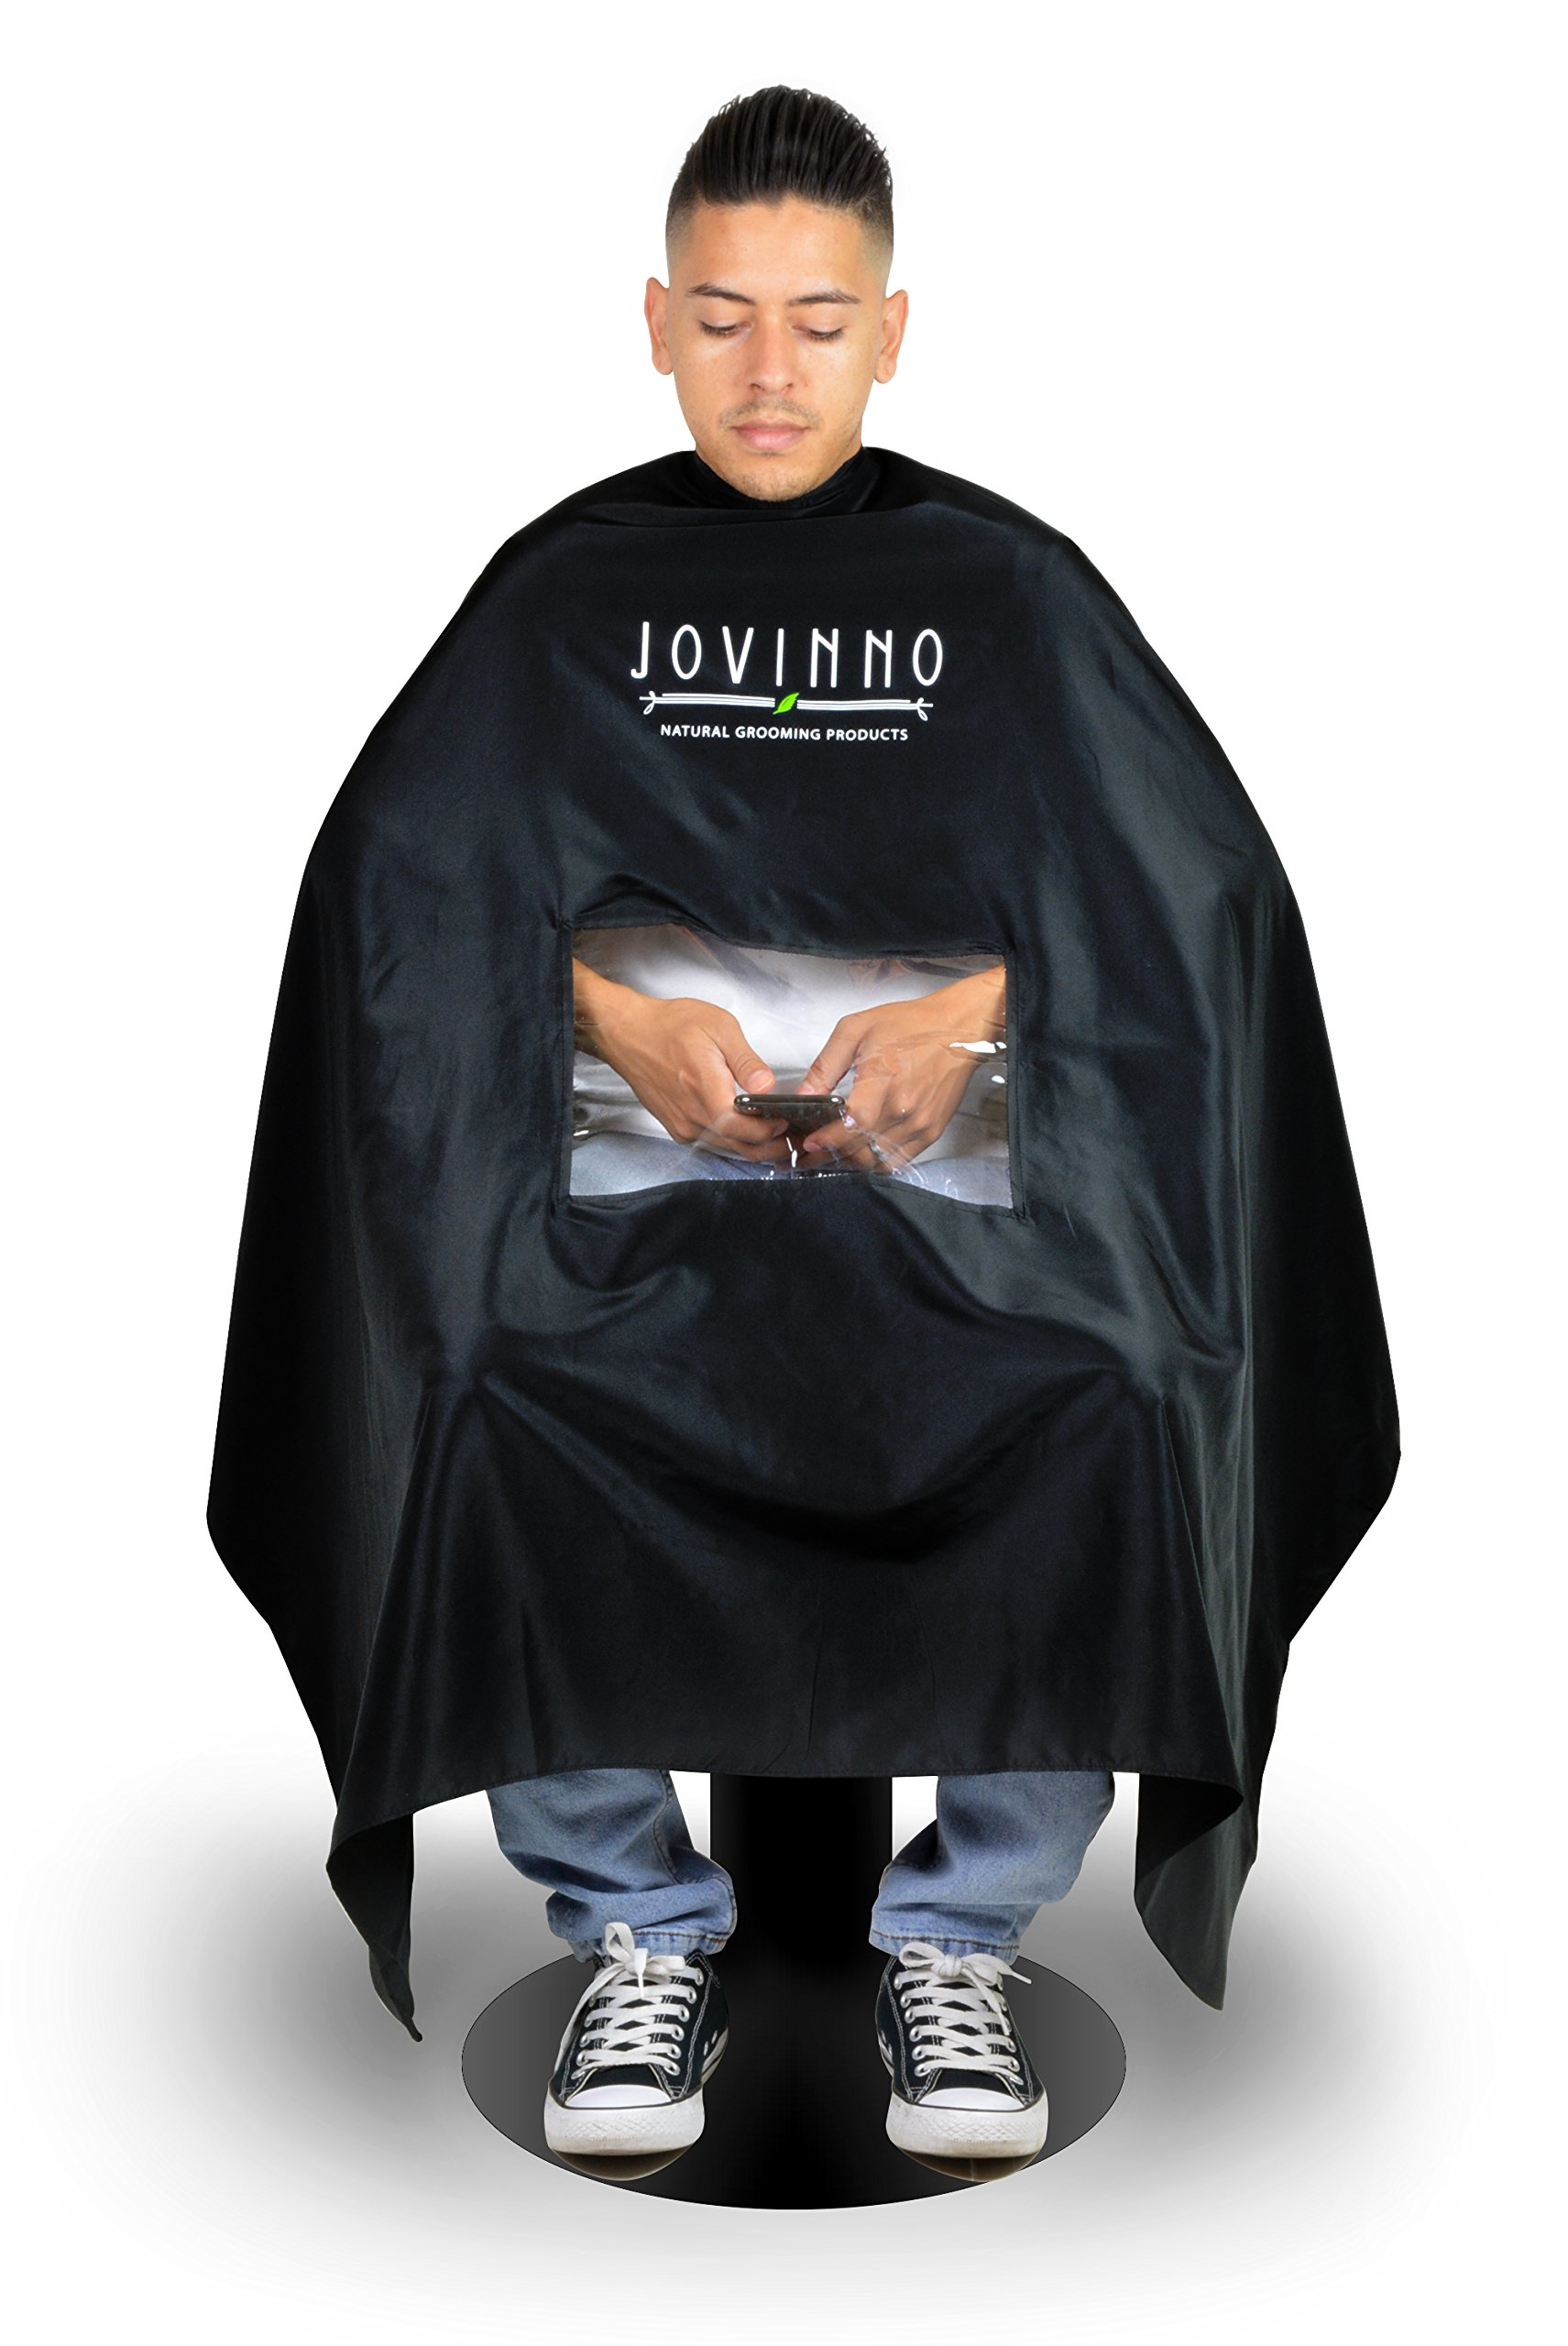 Jovinno - Large Size Professional Quality Hair Cutting Barber/Salon Cape Gown Apron With Mobile Phone Viewing Window, Metal Snap Neck Closure, Hanging Hook - Satisfy Your Customers by Jovinno